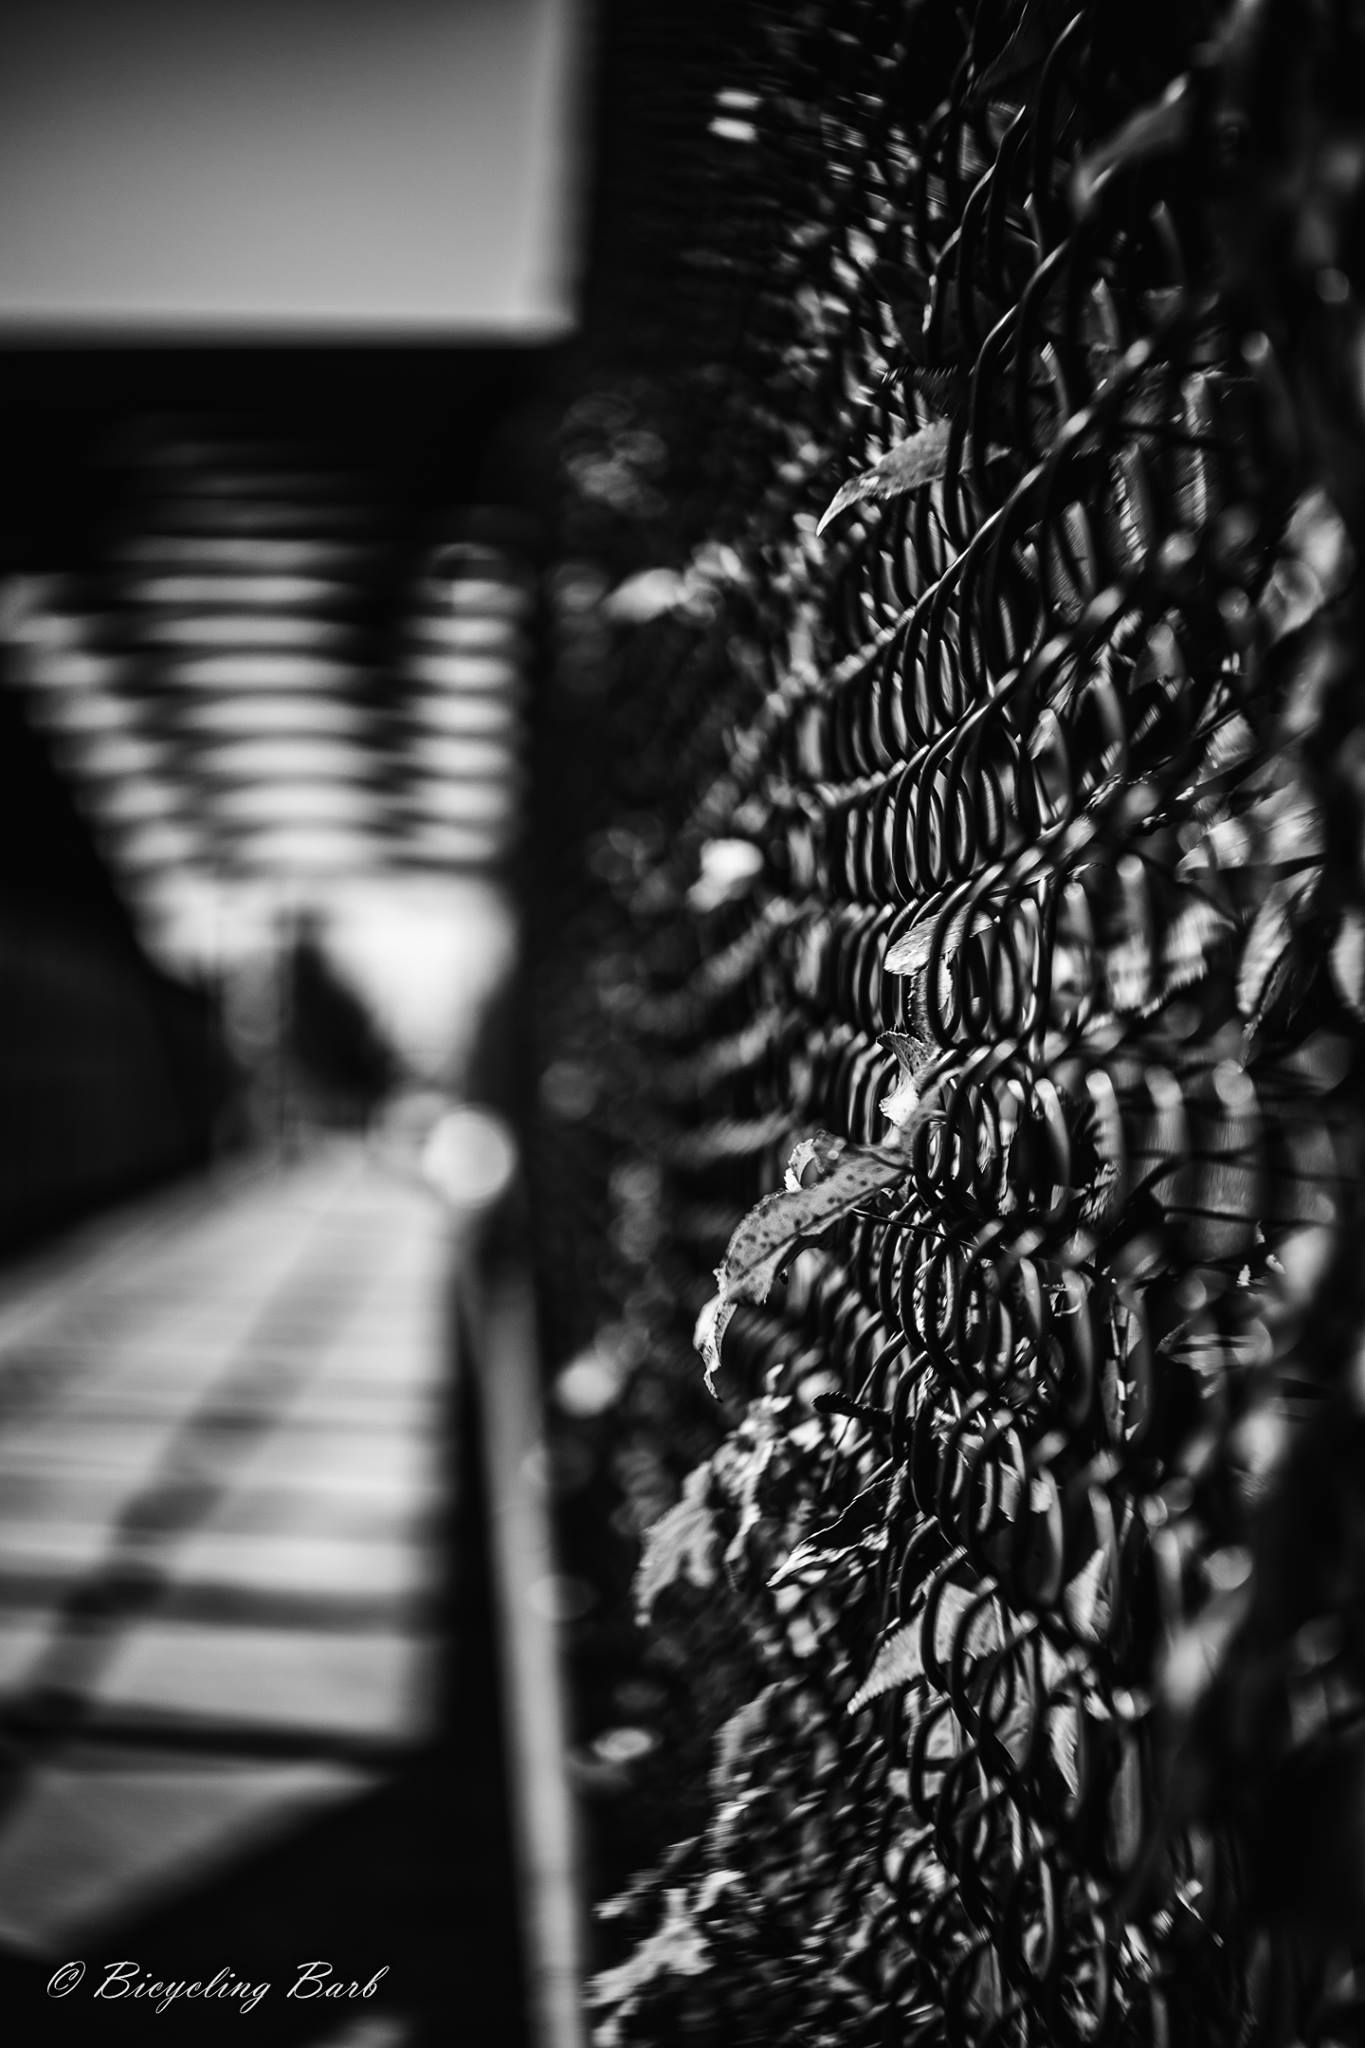 black and white chain link fence shadows leaves featured photos of the week we are the enemy of perfection